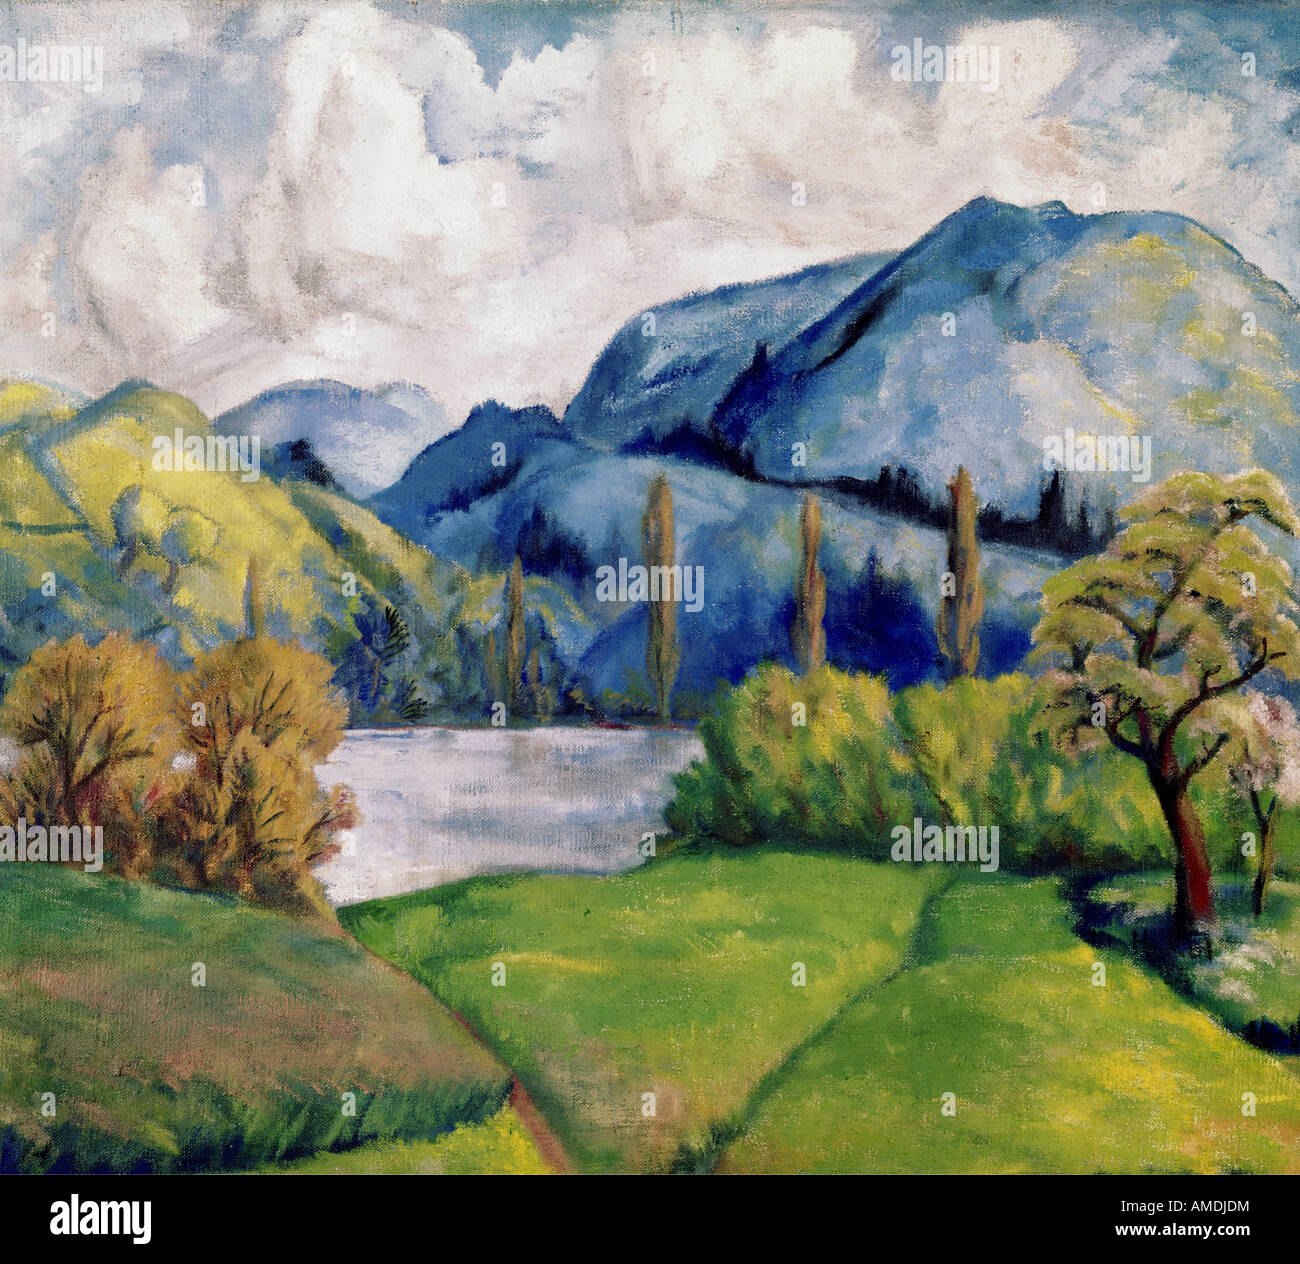 fine arts, Cezanne, Paul, (1839 - 1906), painting, Kunsthaus Zürich, French, impressionsm, nature, tree, trees, Stock Photo